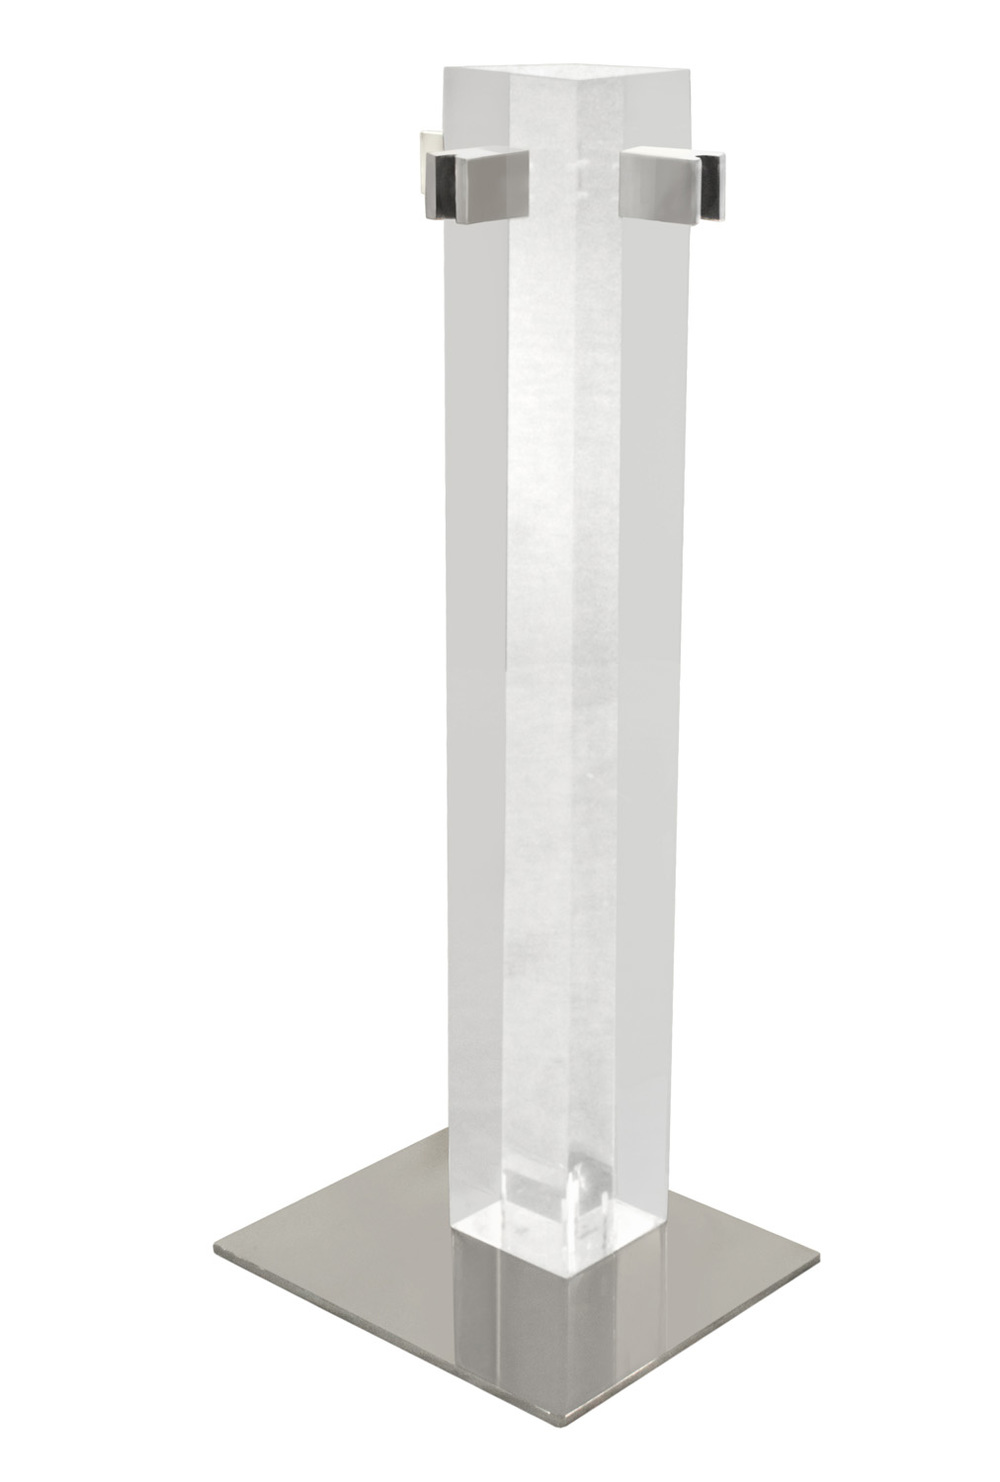 Albrizzi 25 lucite, chrome, blk handl lucite fireplace30 hires.jpg